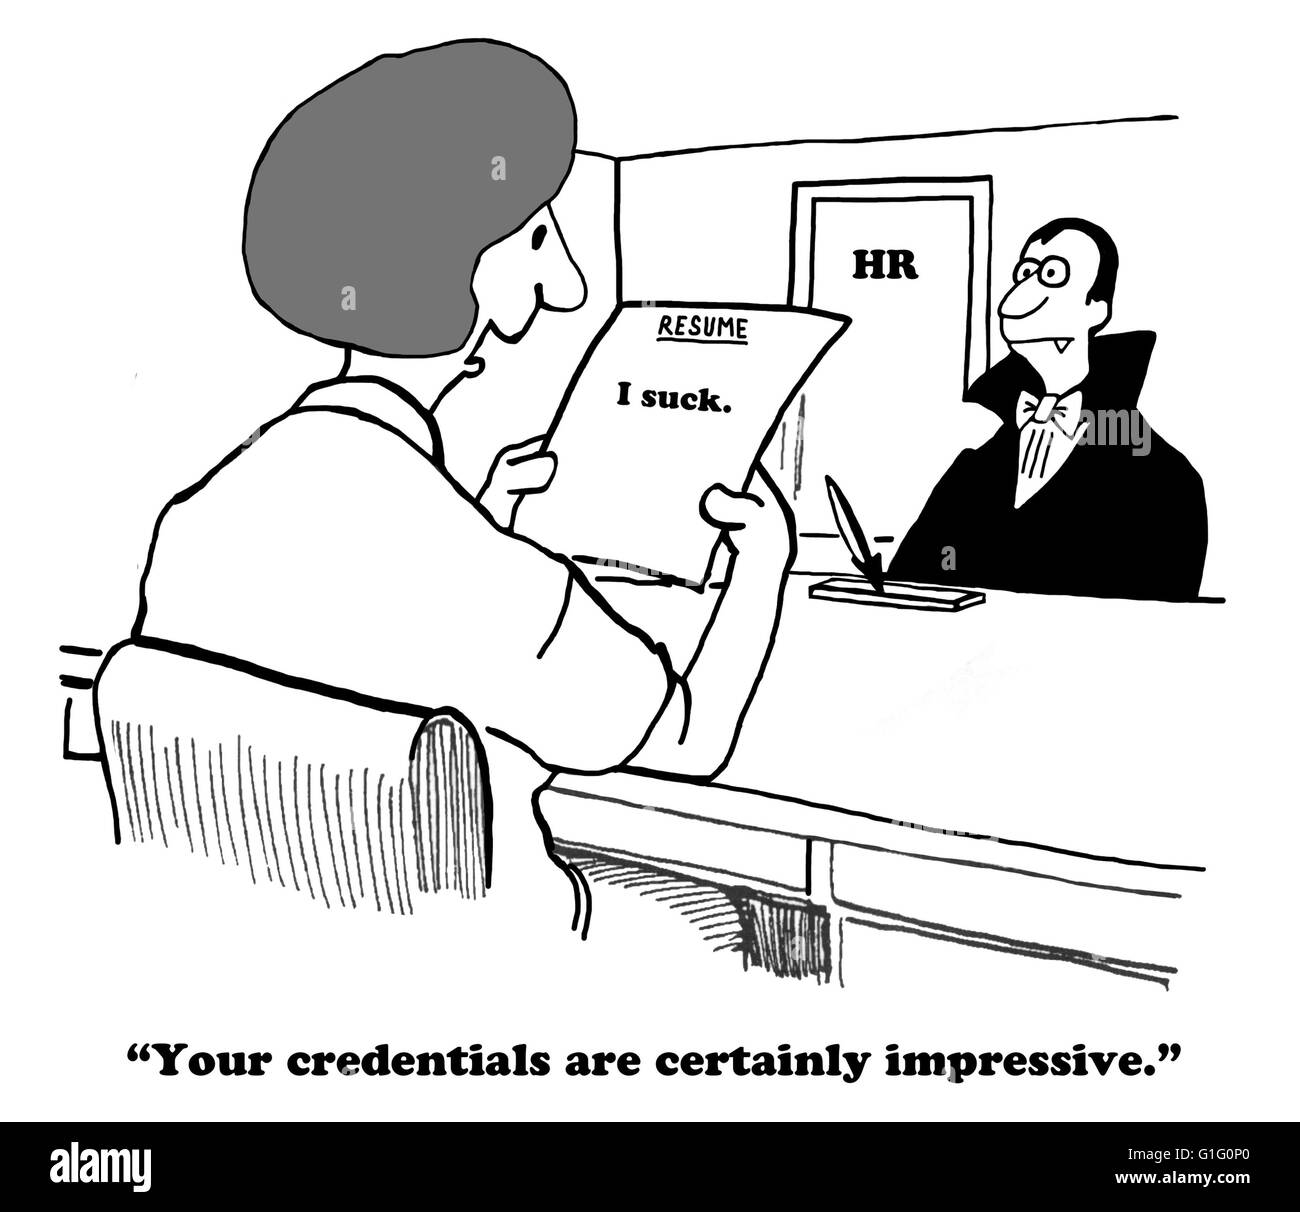 Business Cartoon About A Concise But Honest Resume Stock Photo